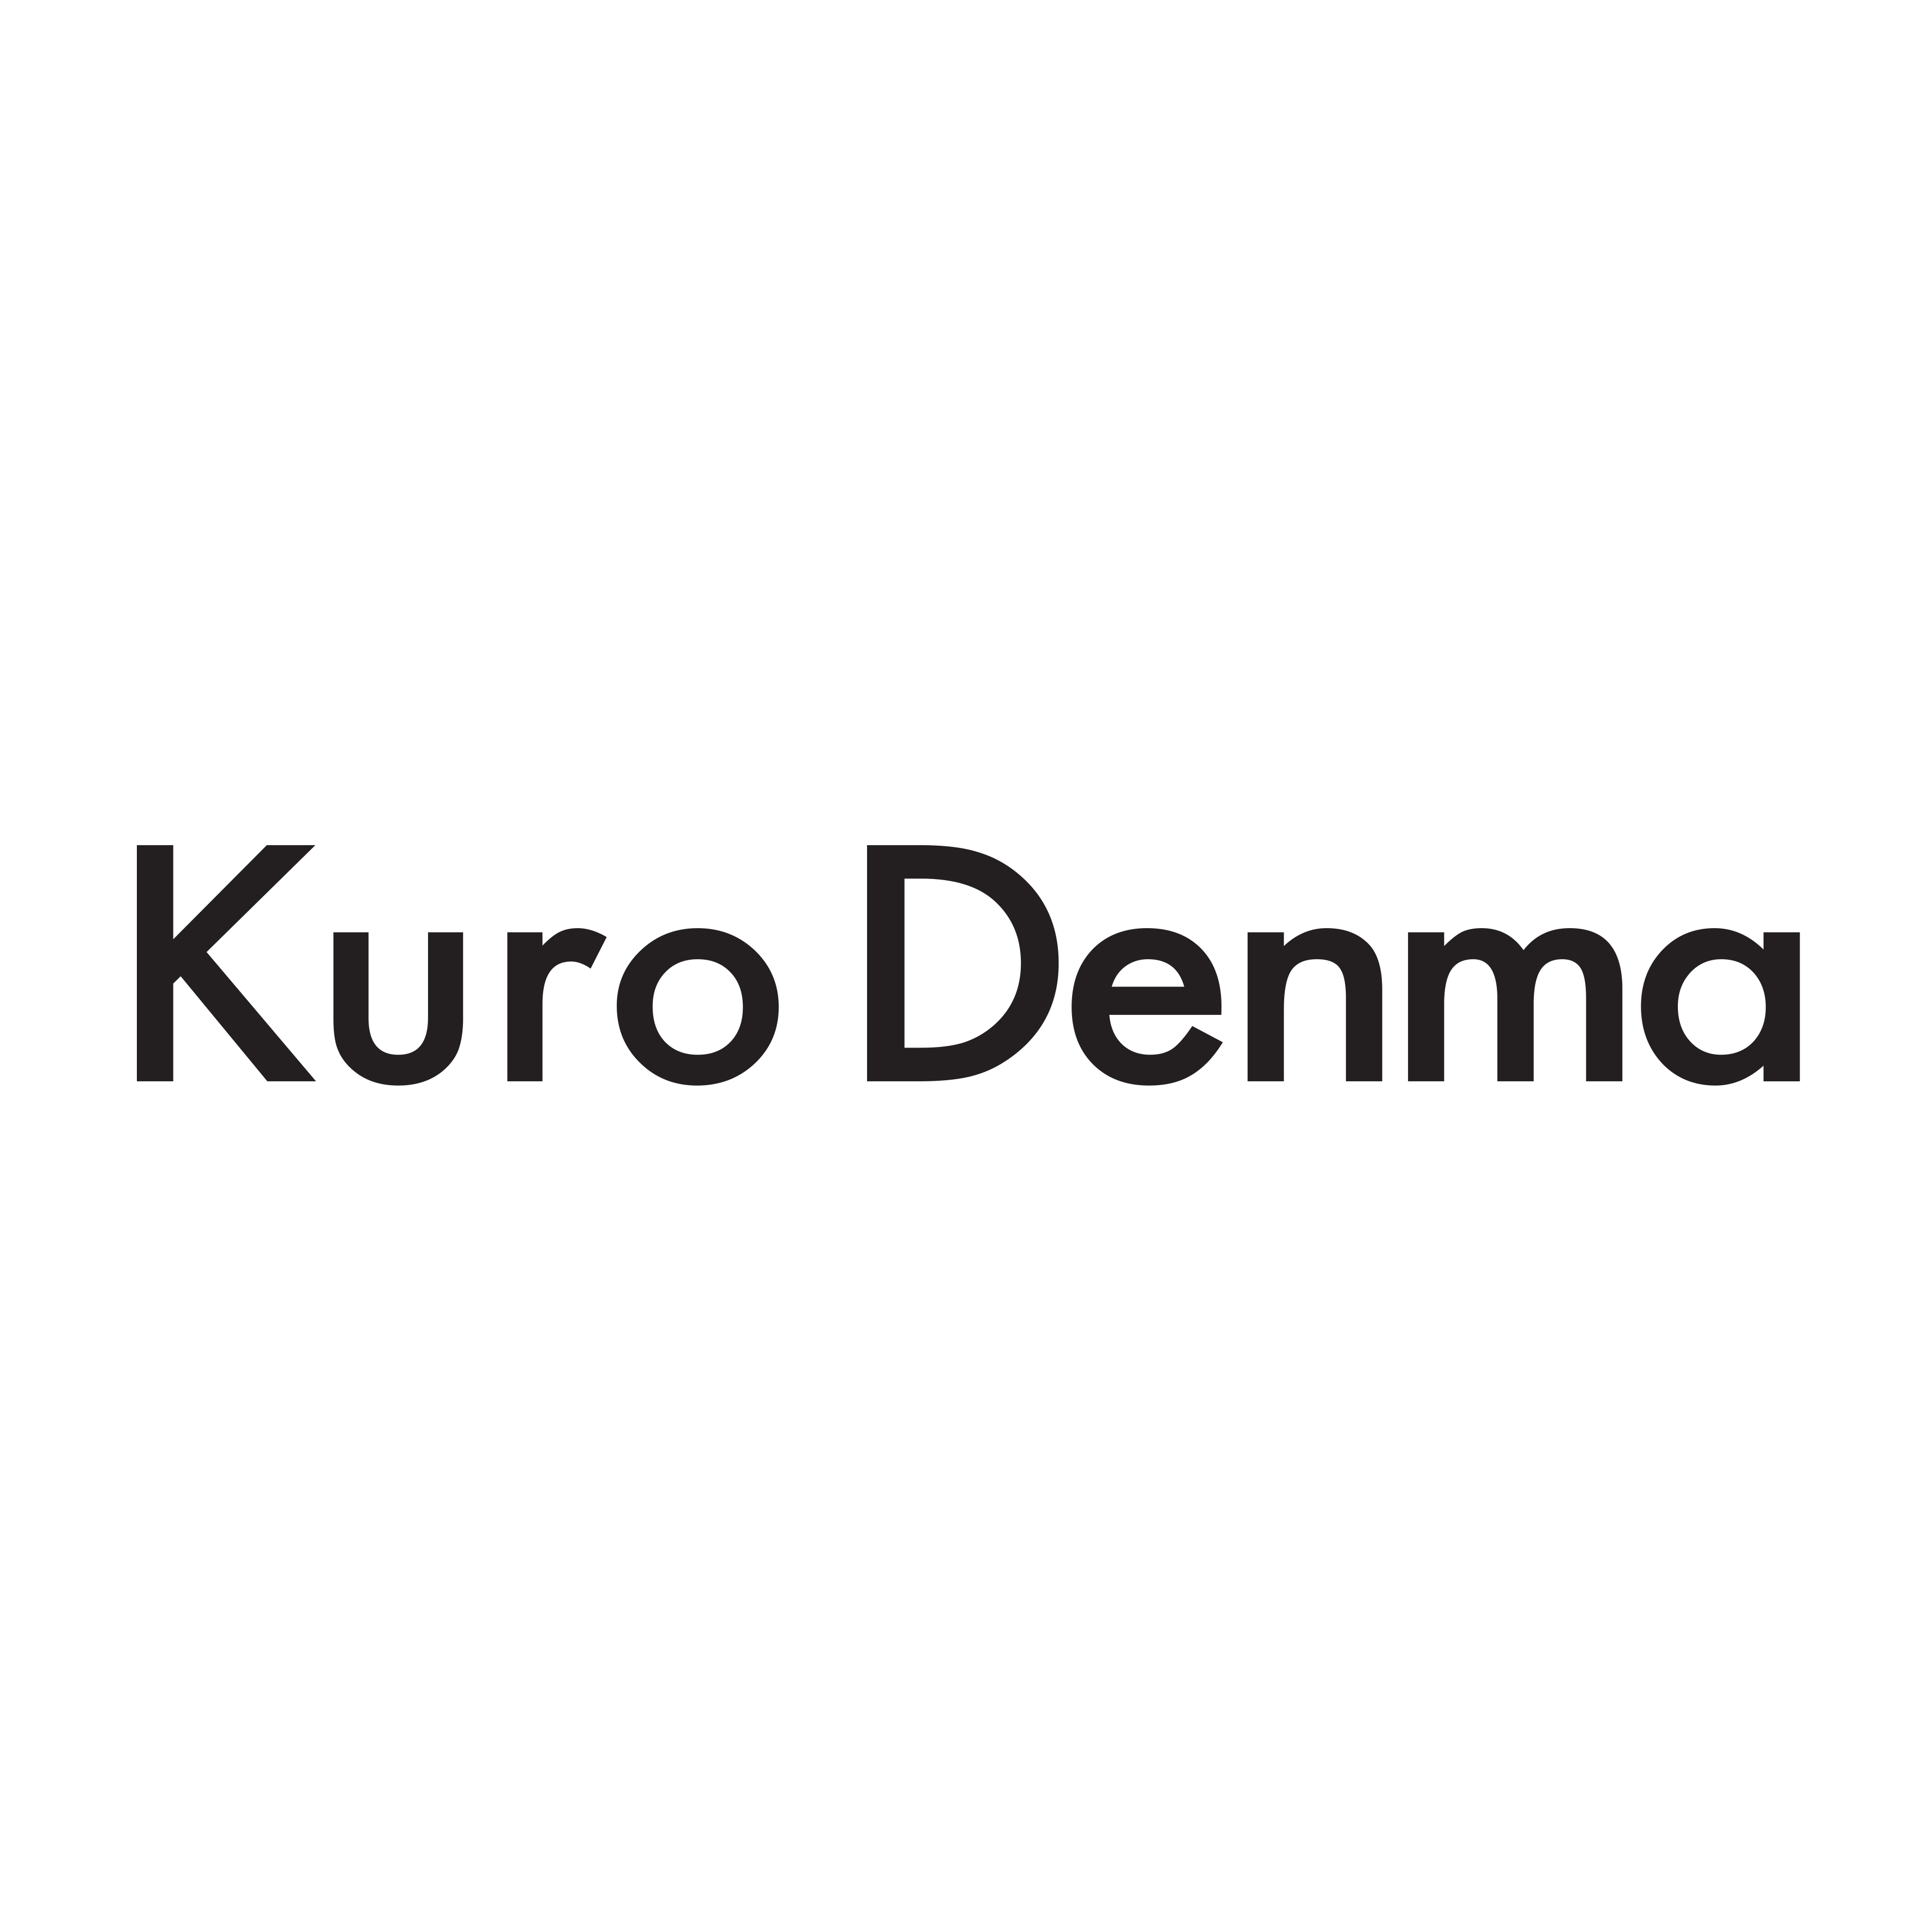 Kuro Denma